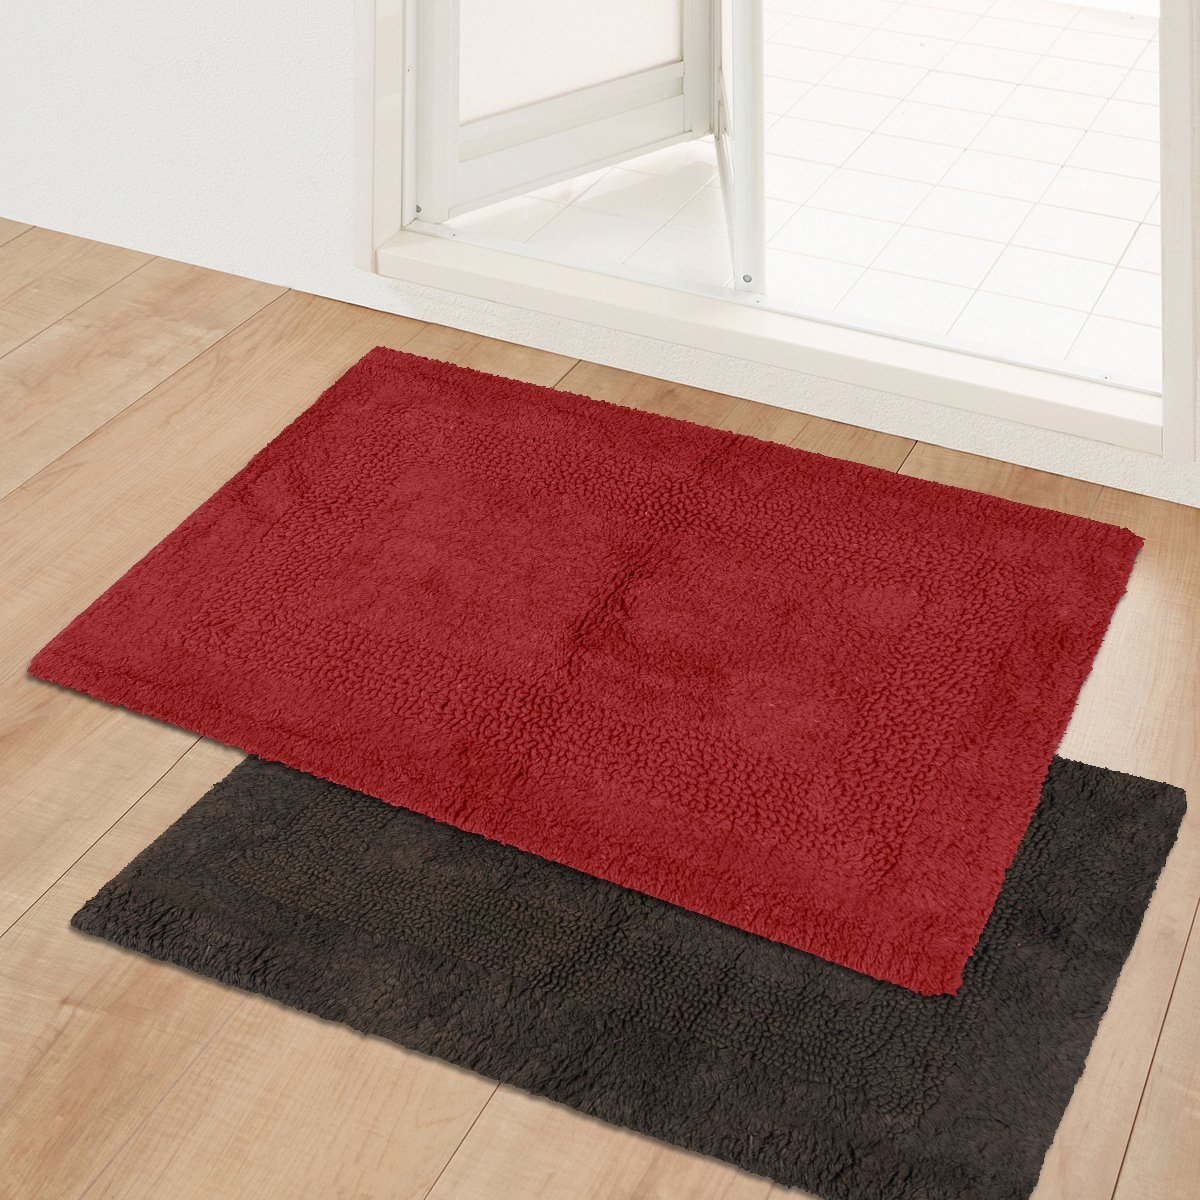 kitchen mats amazon island cart with seating buy story home door mat combo set of 2